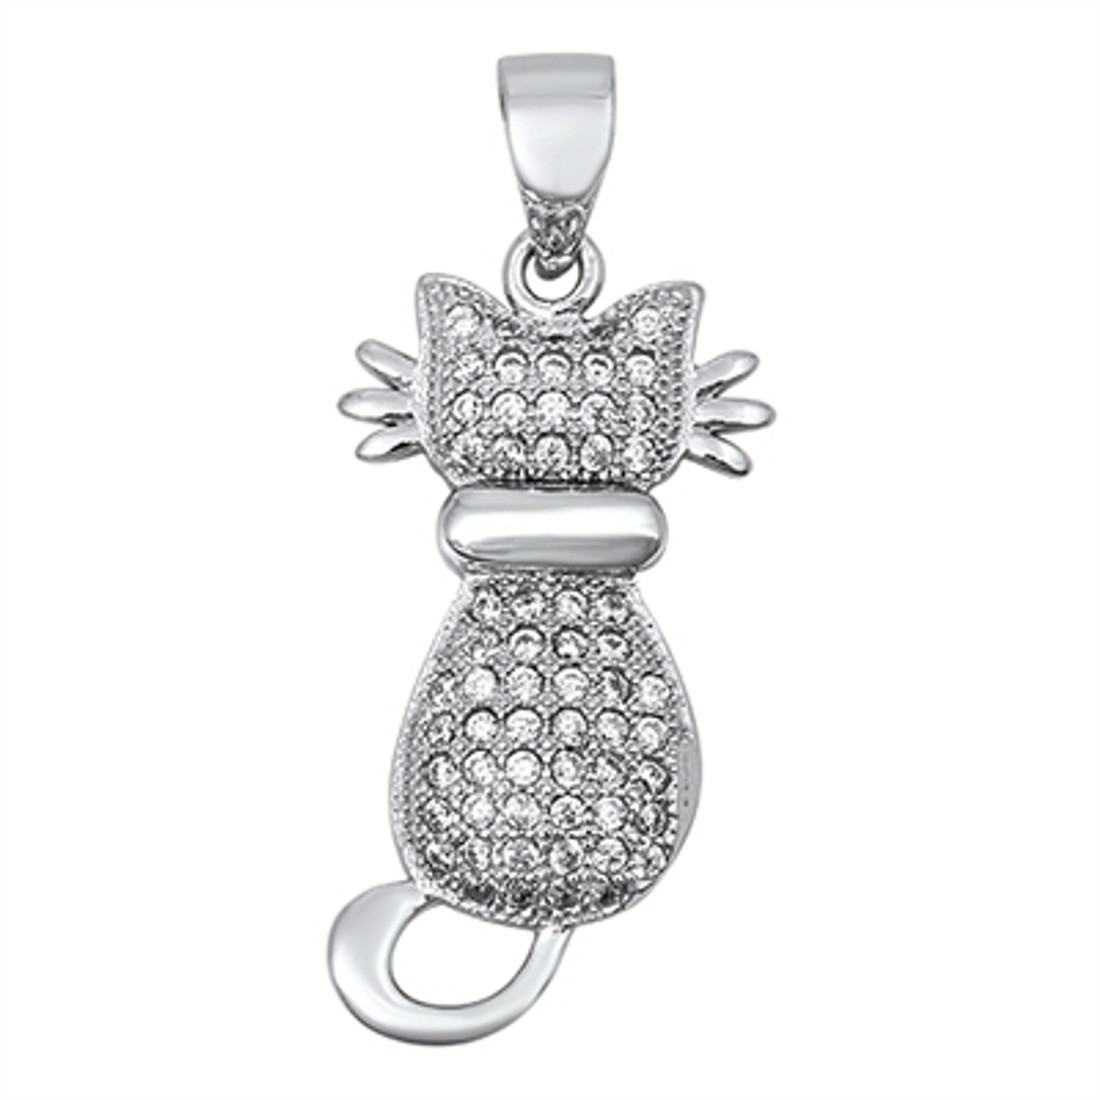 Kitty cat with clear CZ sterling silver pendant.